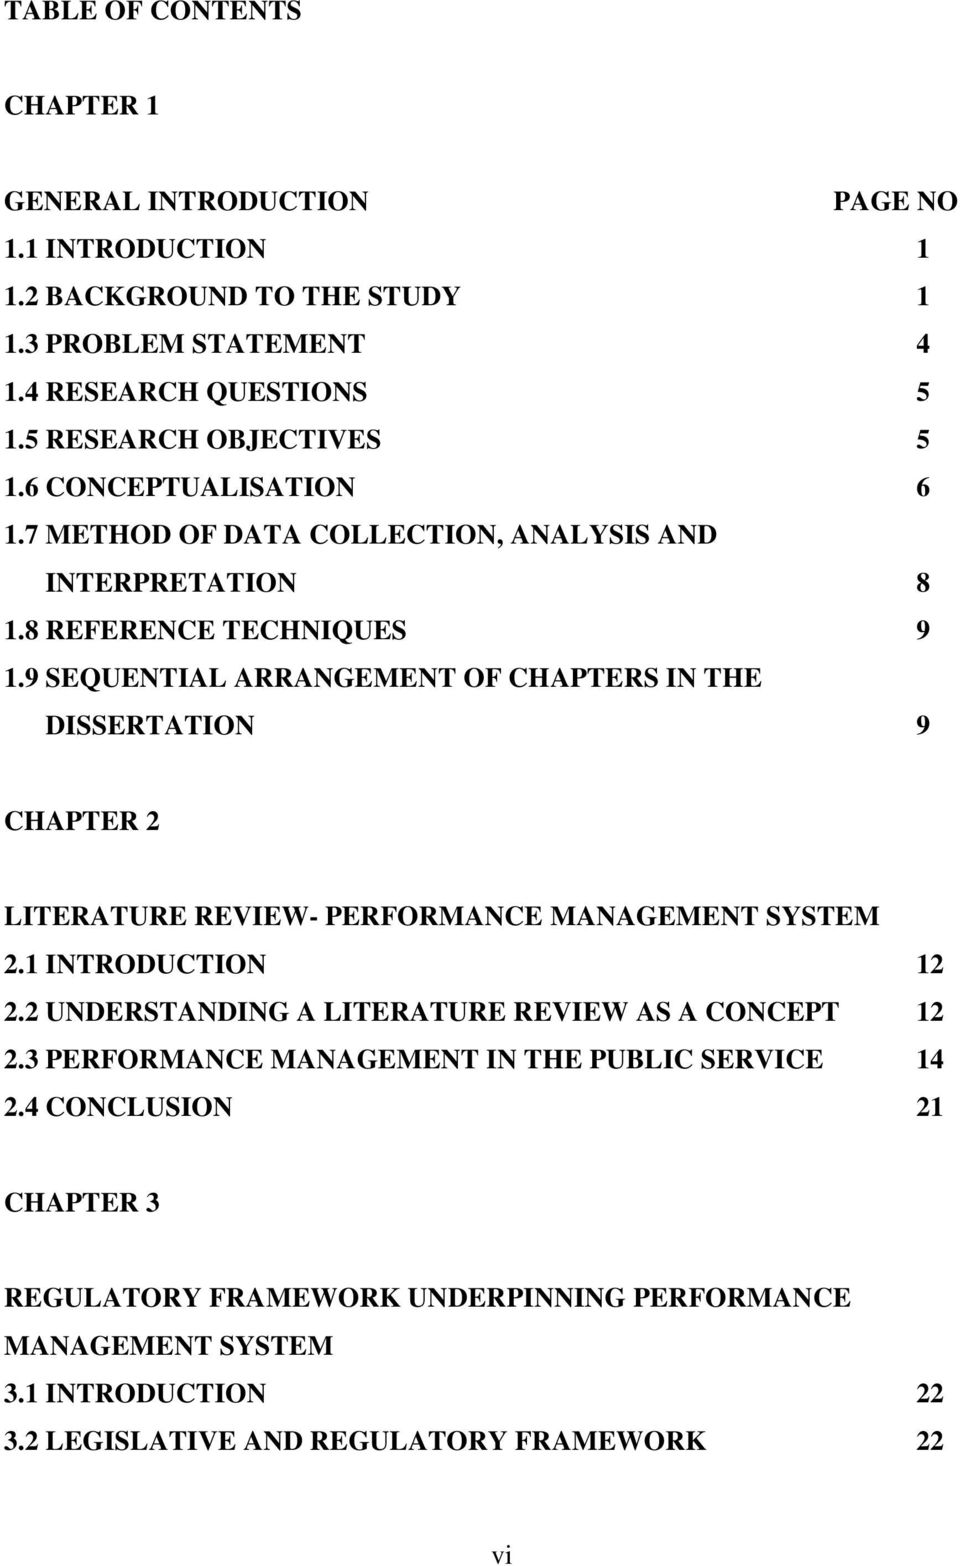 literature review on performance management